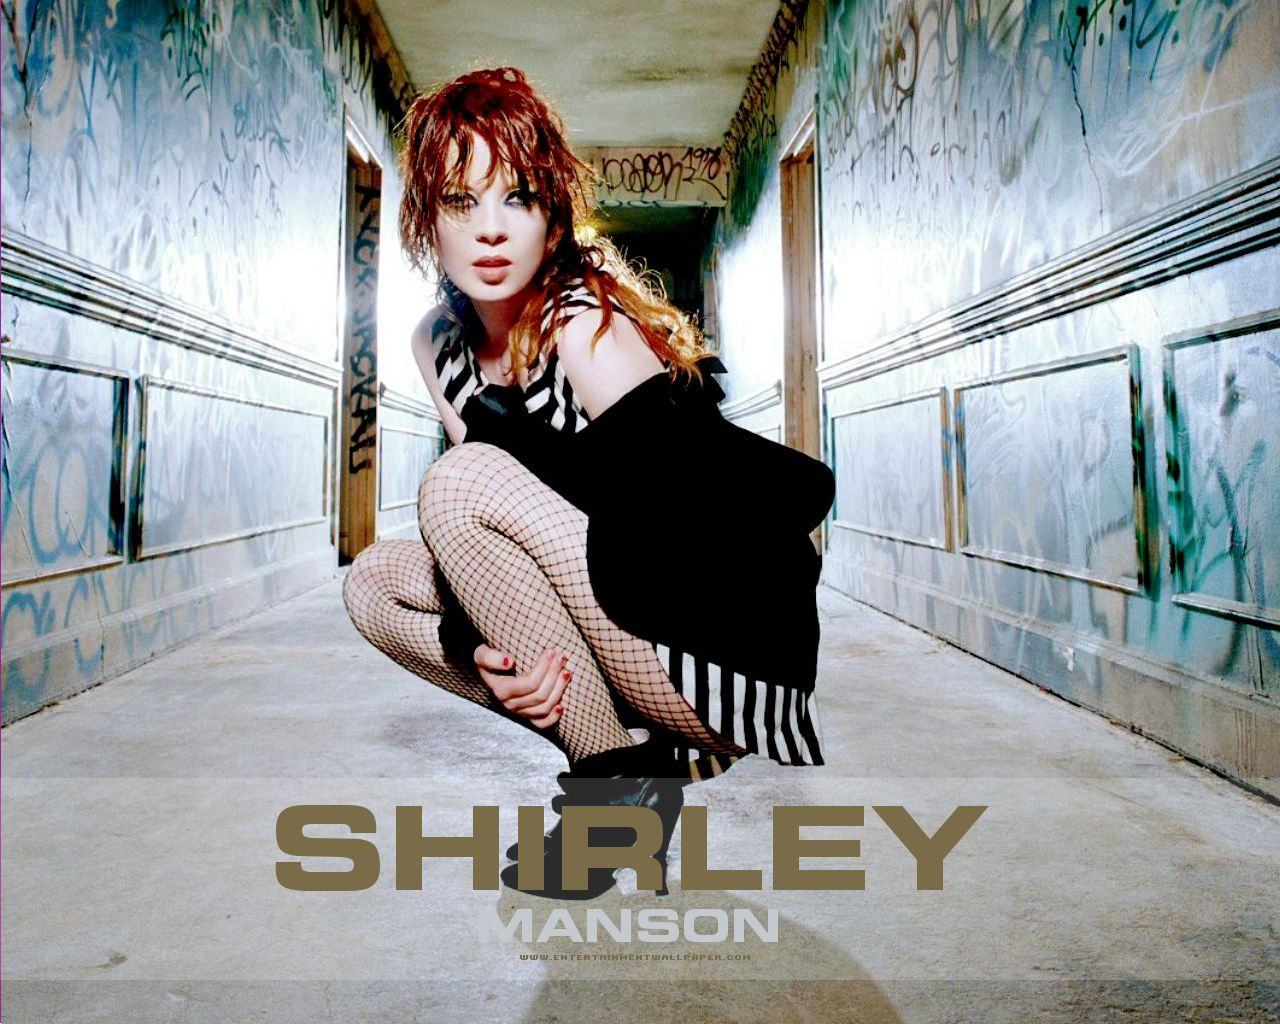 Carly on Comics: Hot Nerd of the Week: Shirley Manson!